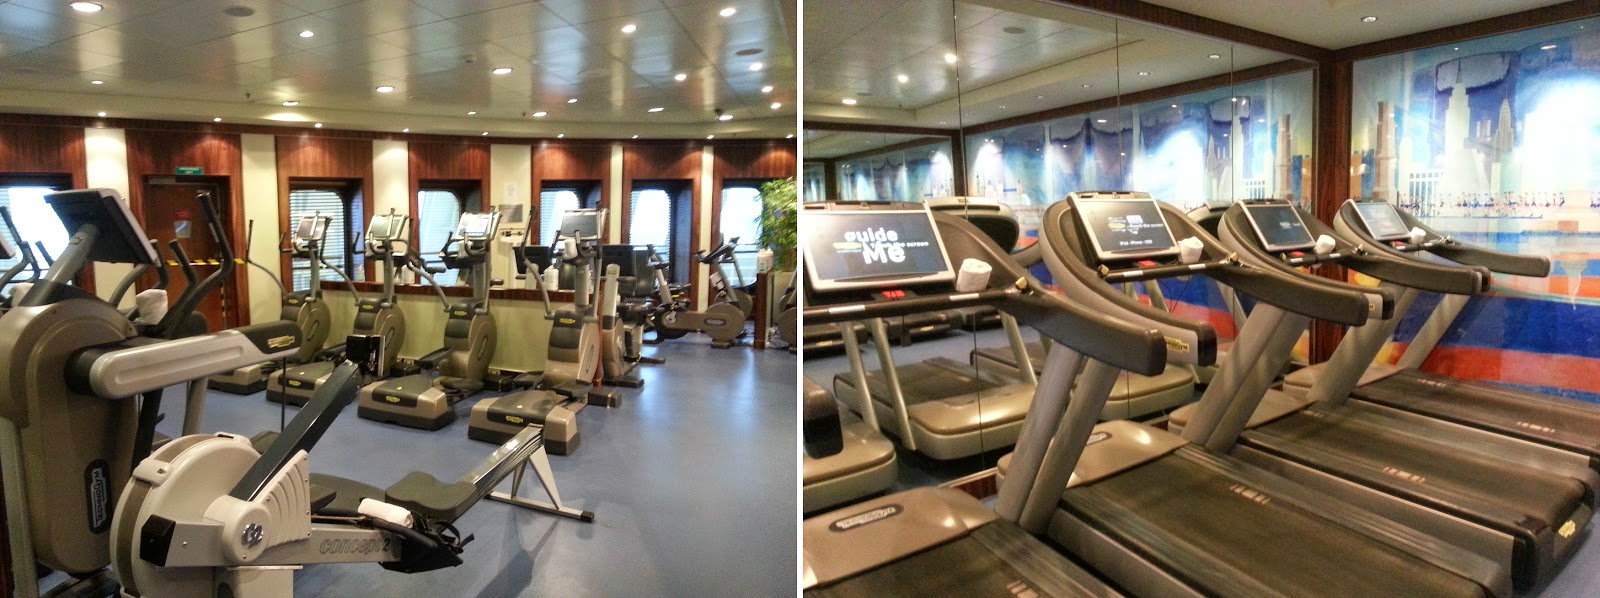 Queen Mary 2 (QM2) - Gym & Fitness Centre